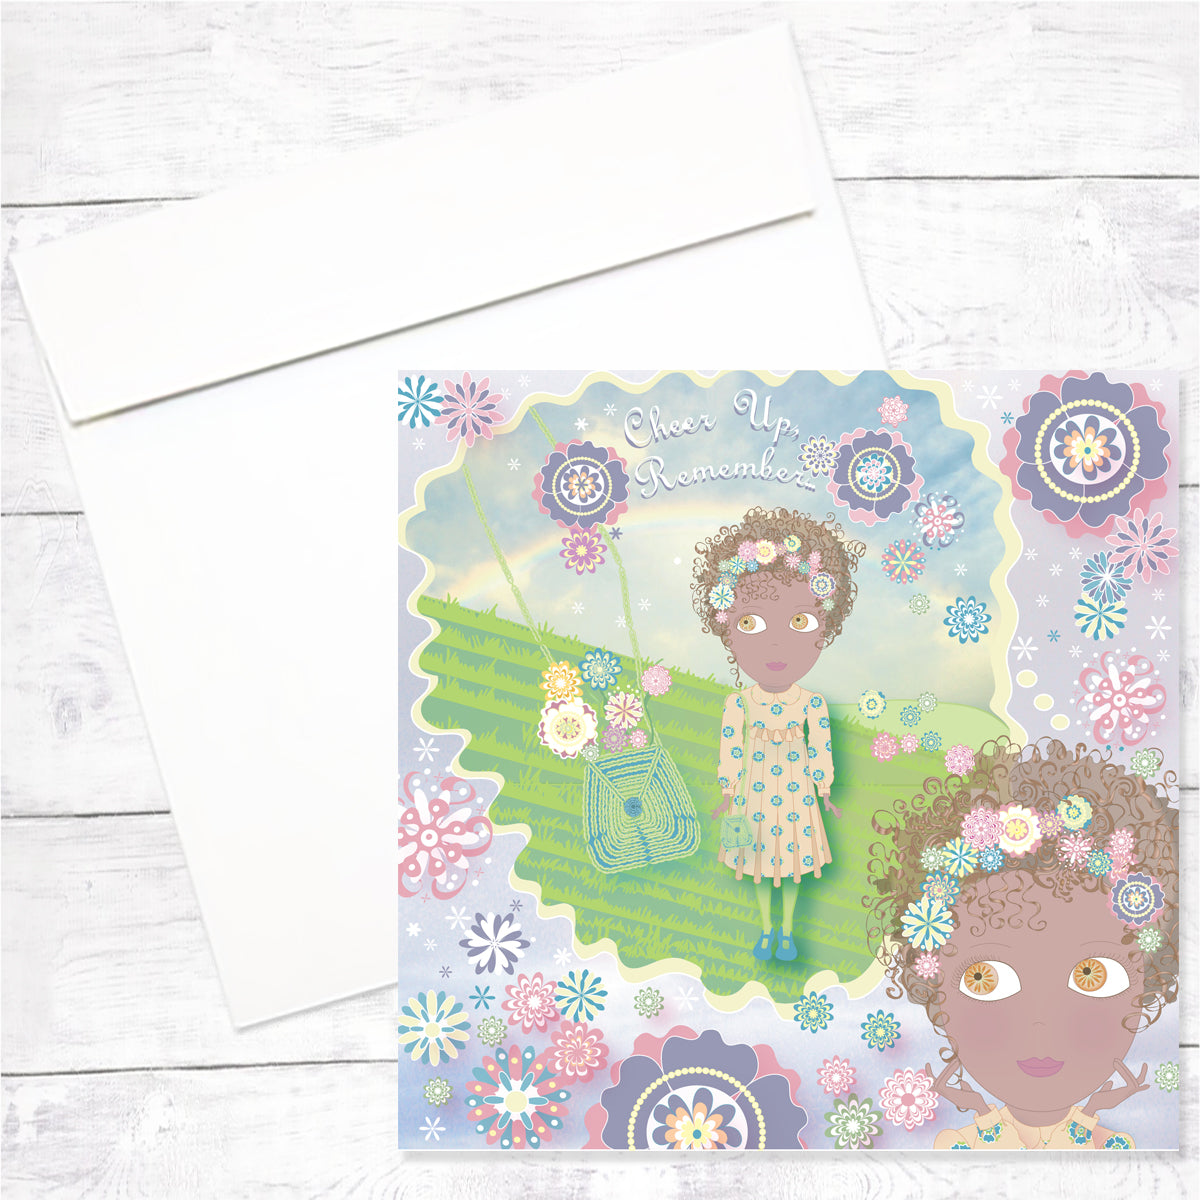 Zahara Greeting Card: Encouragement